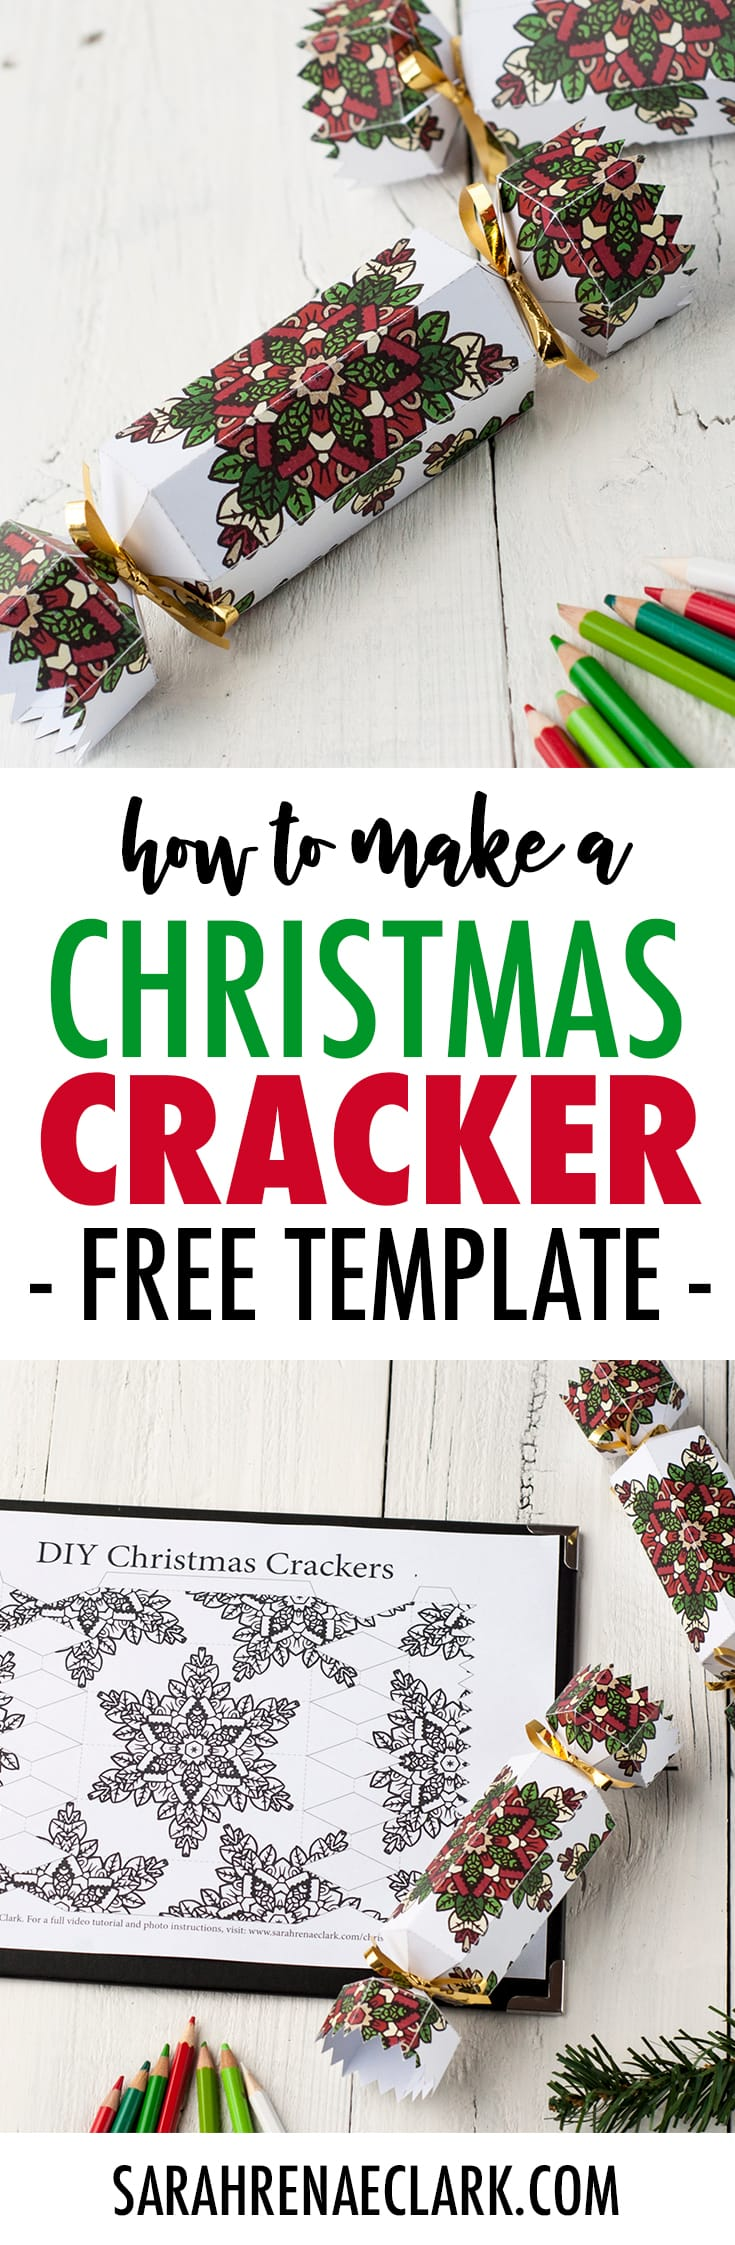 Learn how to make a DIY Christmas Cracker with this easy tutorial and free cracker template! www.sarahrenaeclark.com/christmas-cracker #christmas #printables #diychristmas #christmascracker